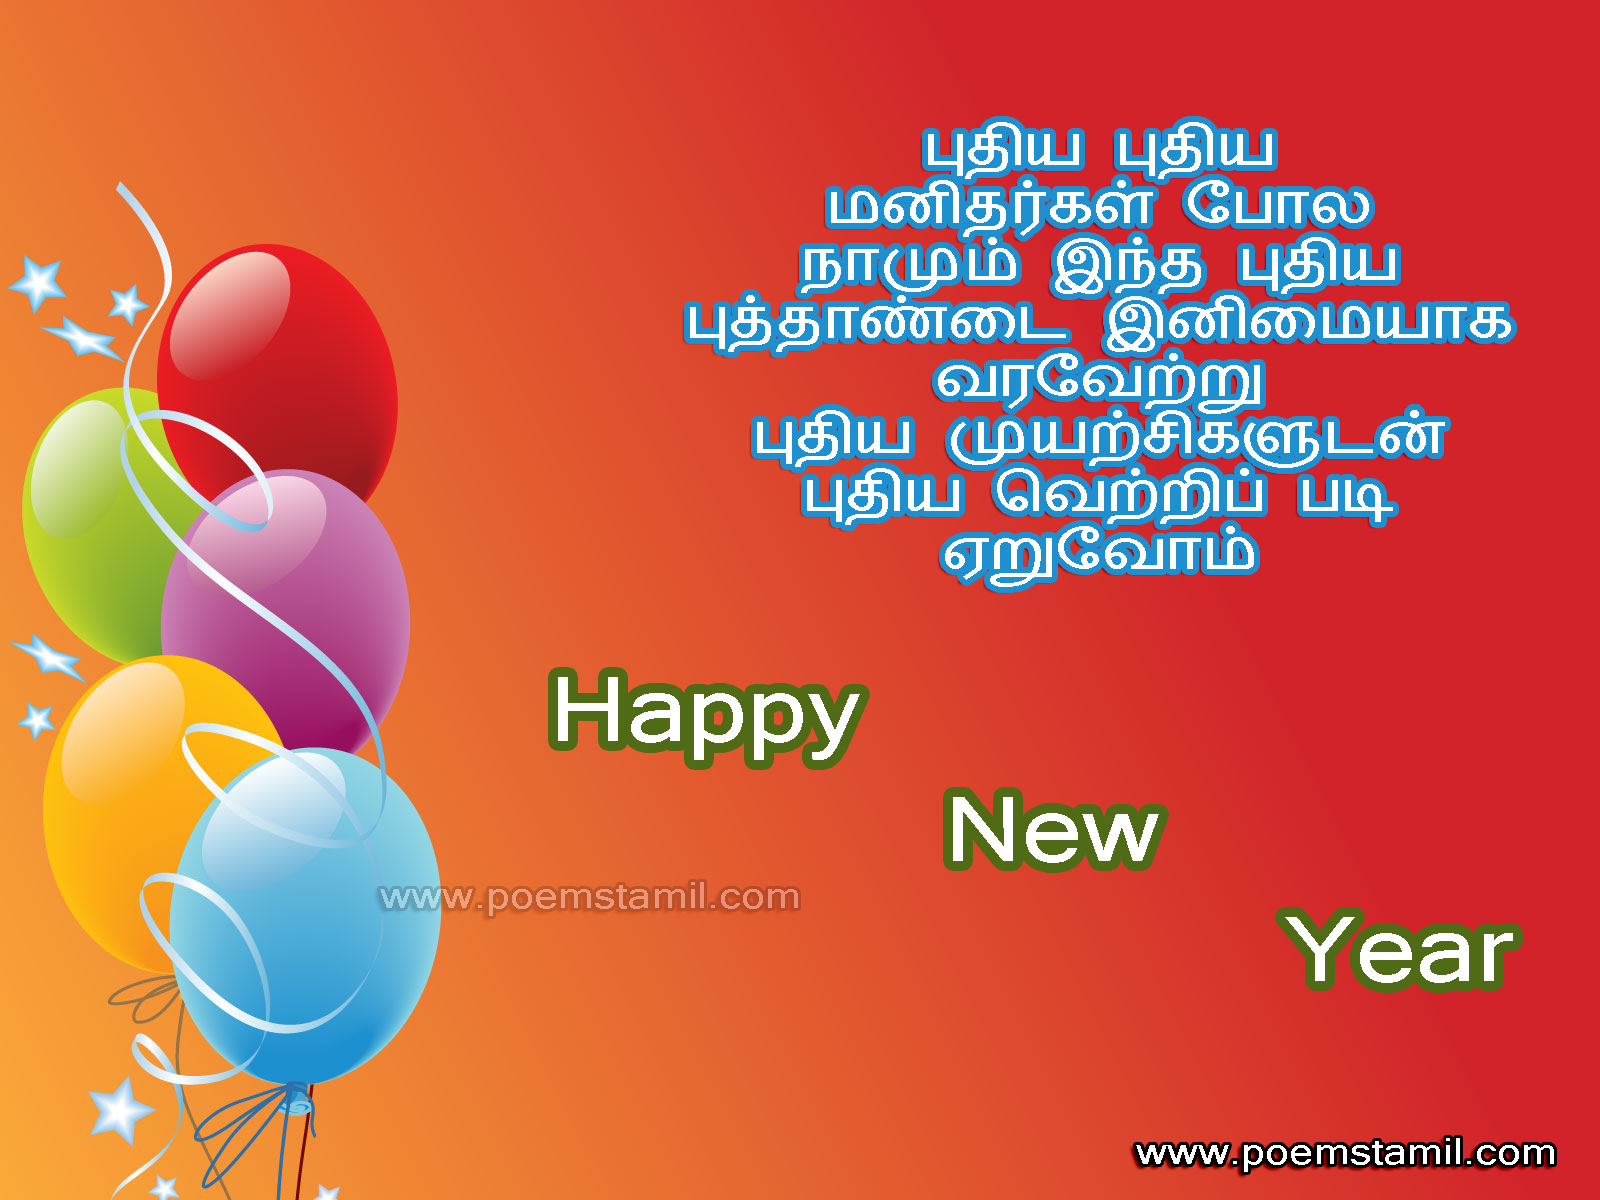 Puthandu New Year 2020 Wishes Quotes In Tamil - Complete ...